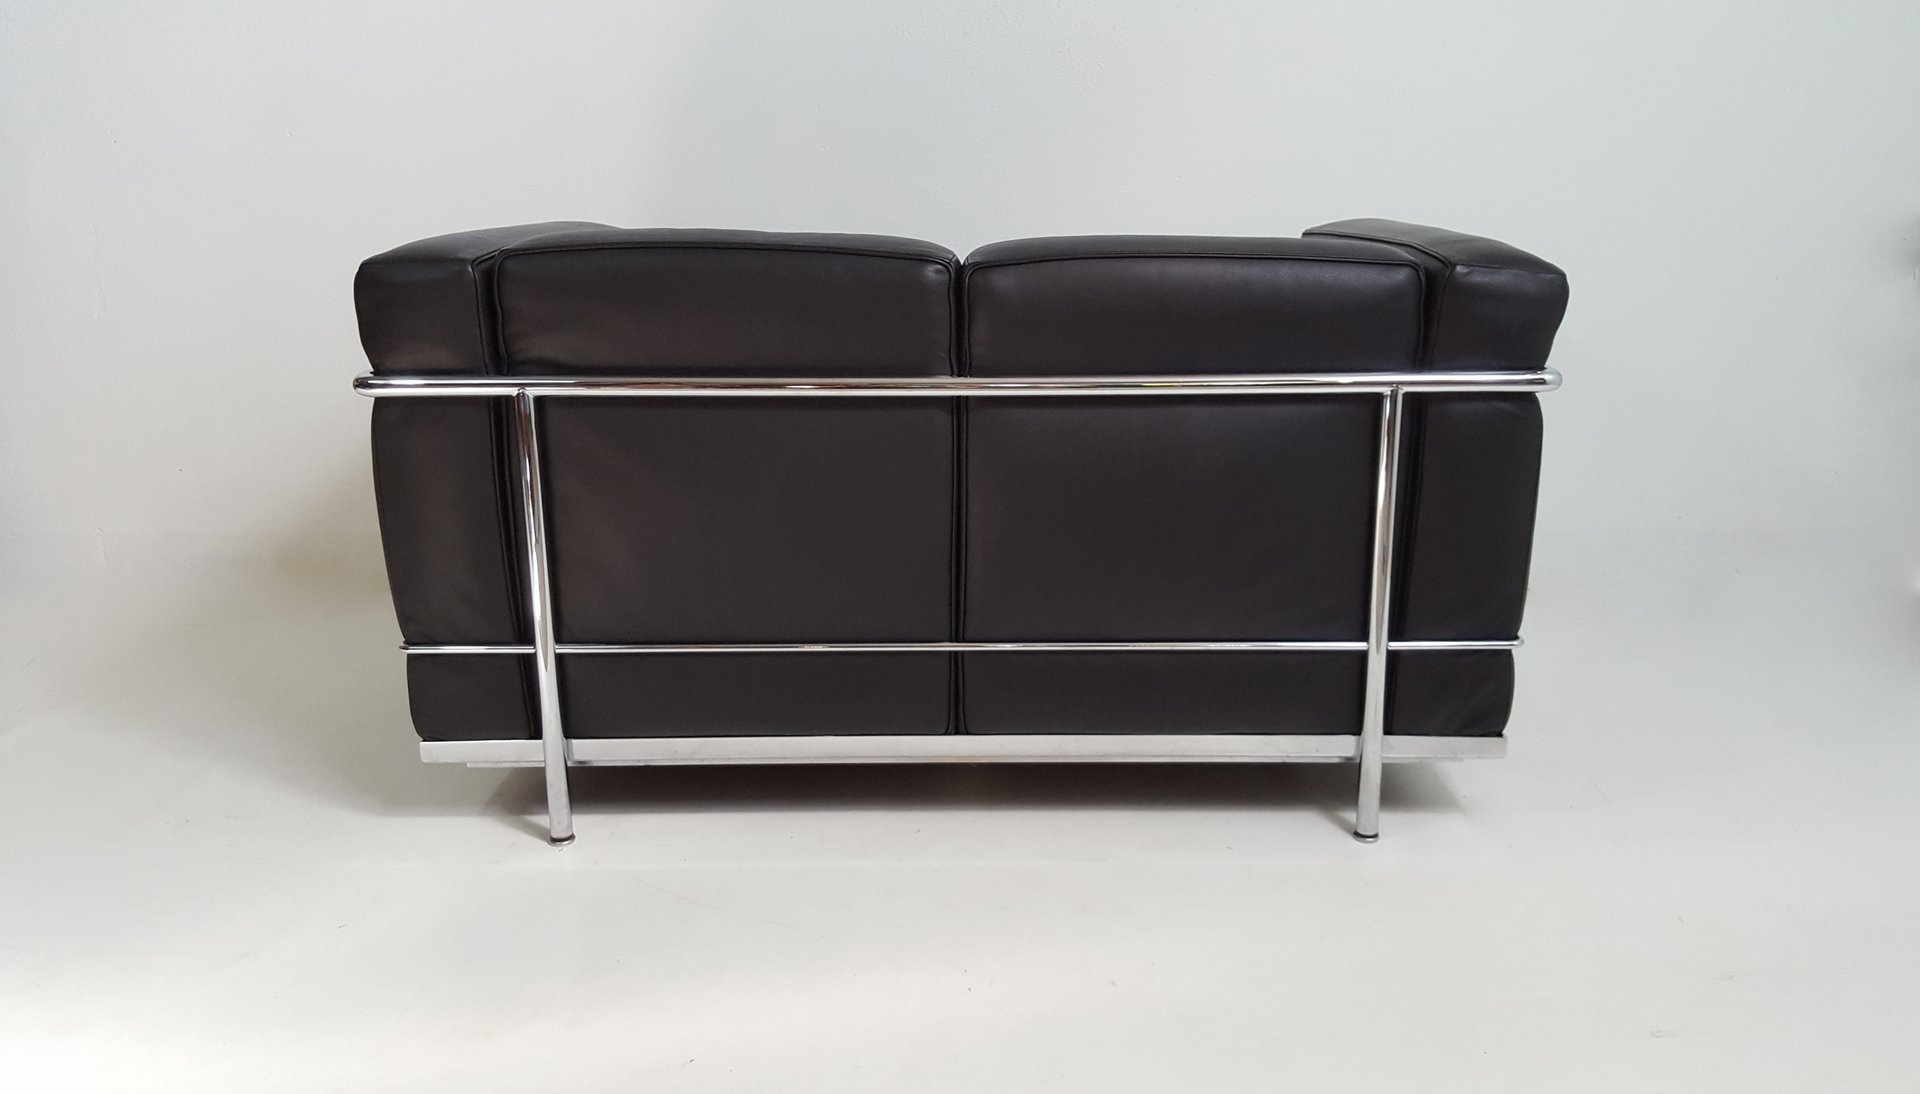 Vintage LC2 Black Leather Sofa by Le Corbusier for Cassina for